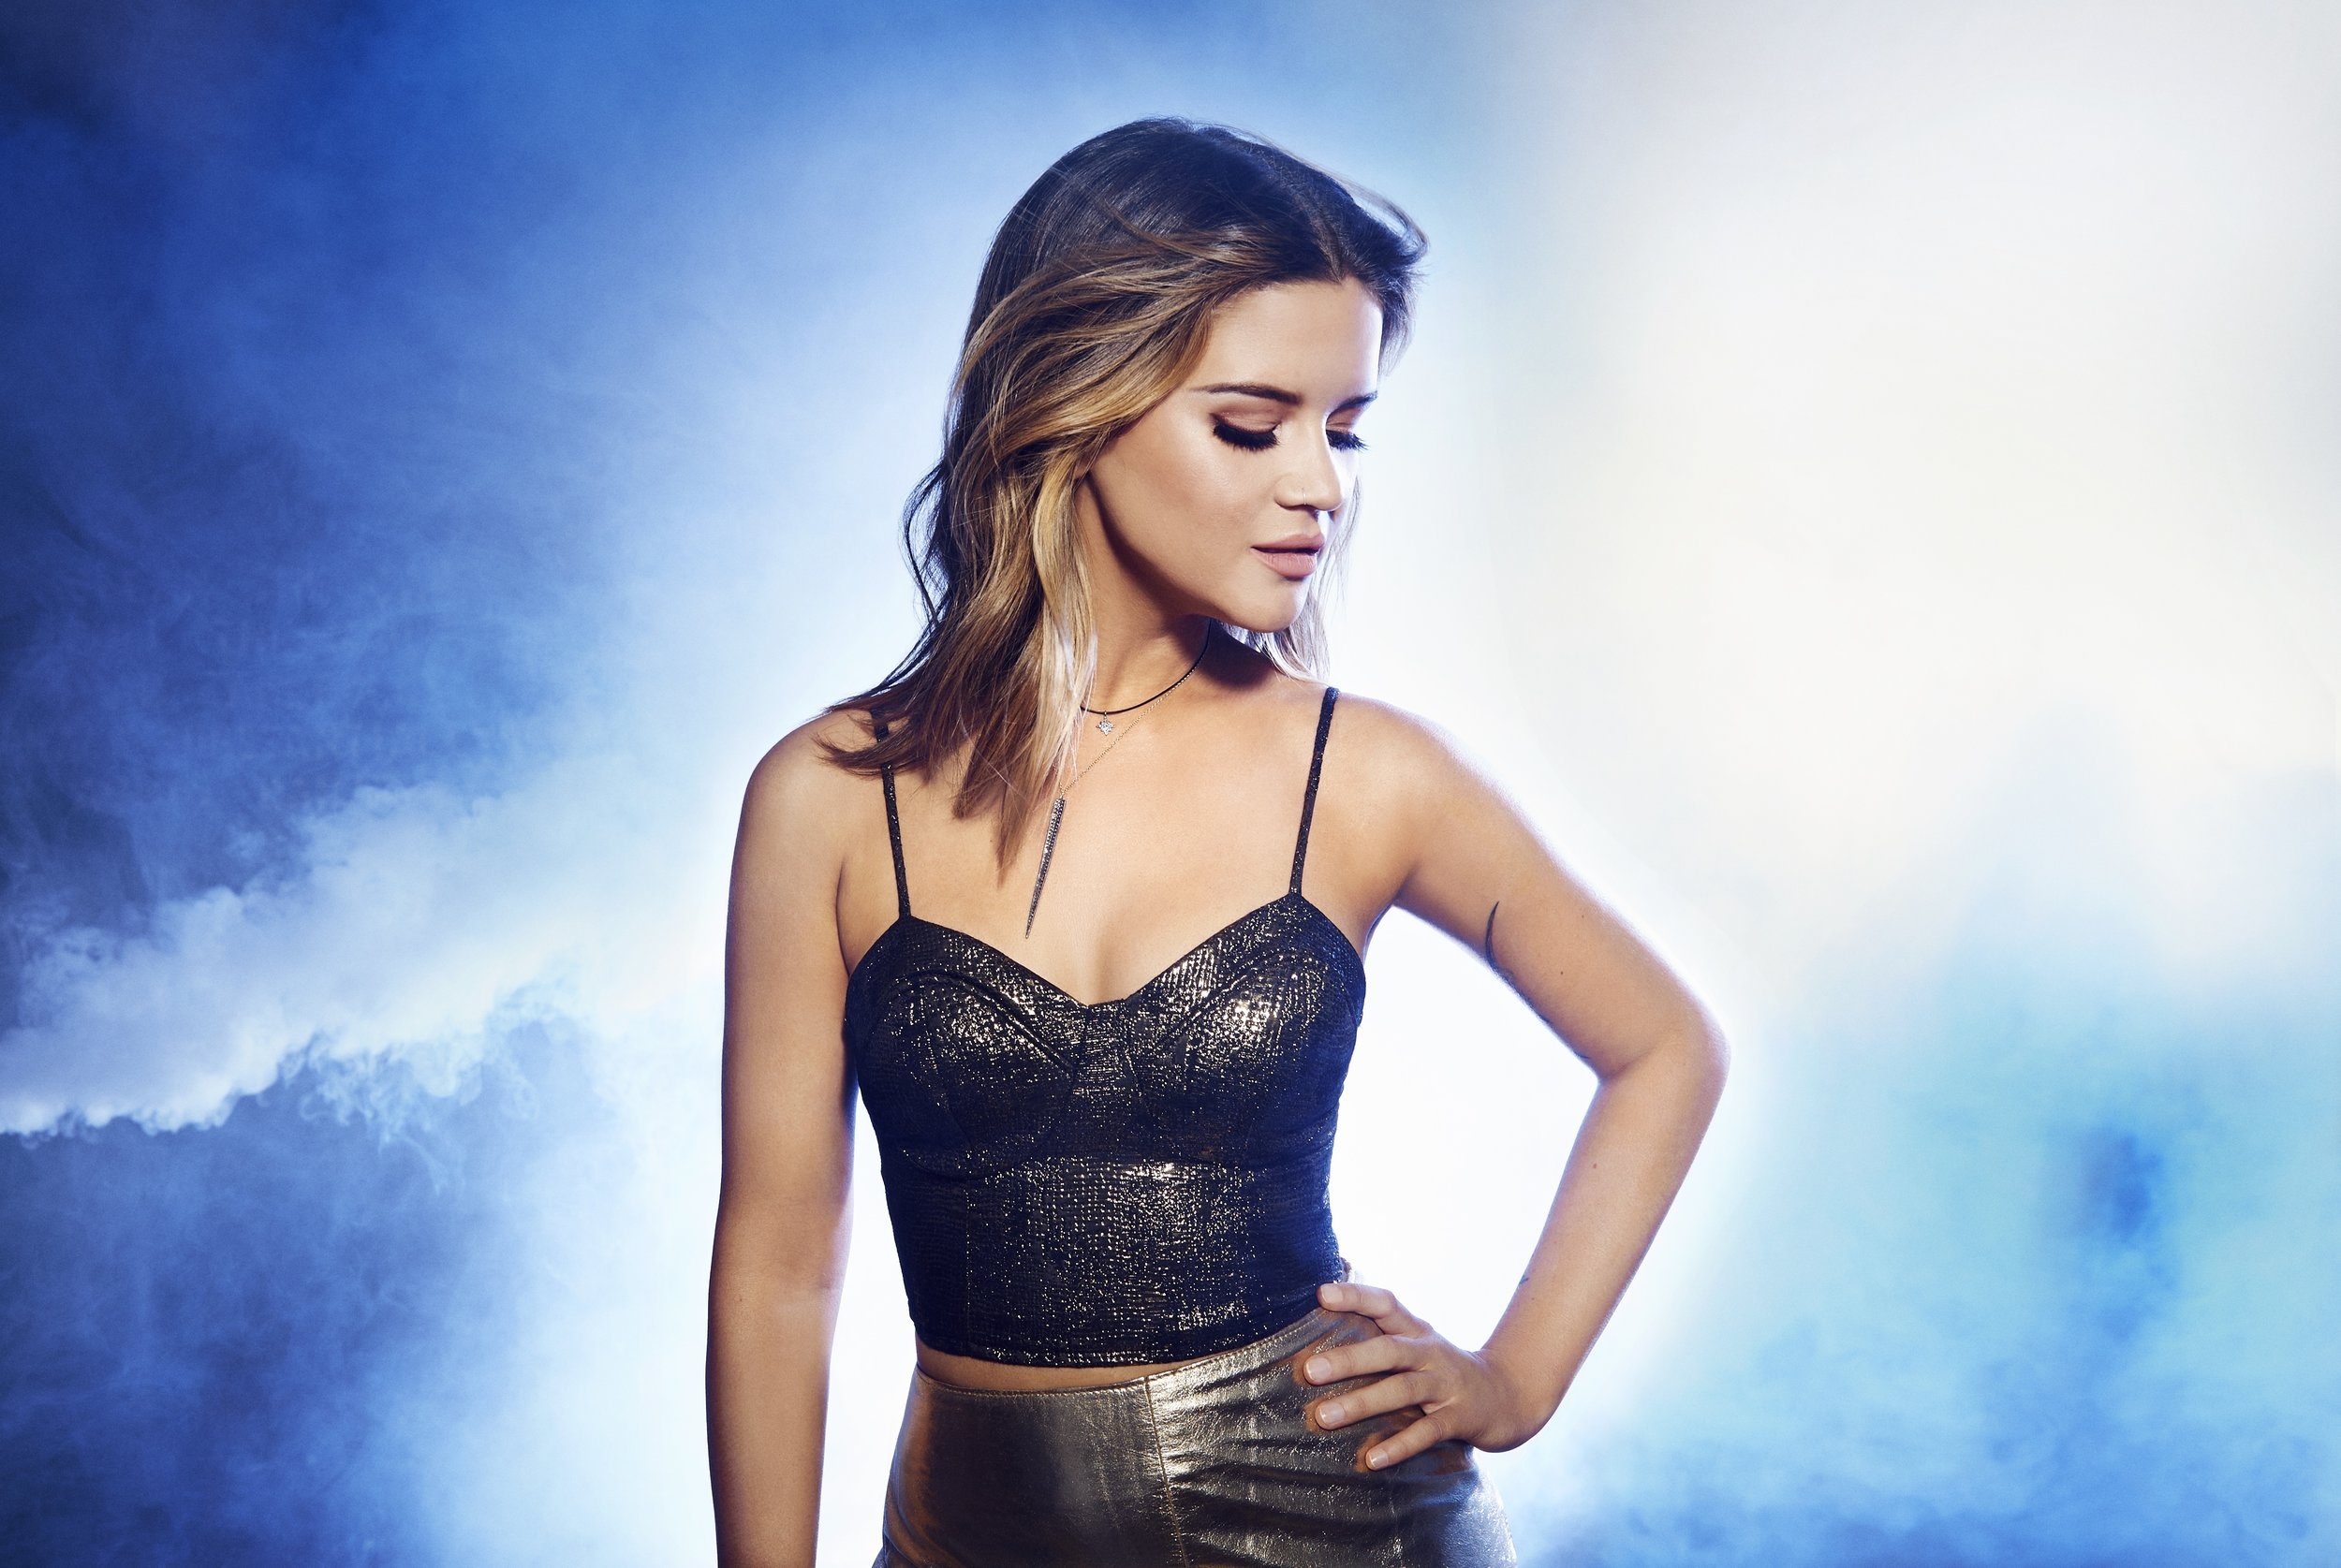 Maren Morris   15 In A 30 Tour (2017)  Video Content & Creative Direction